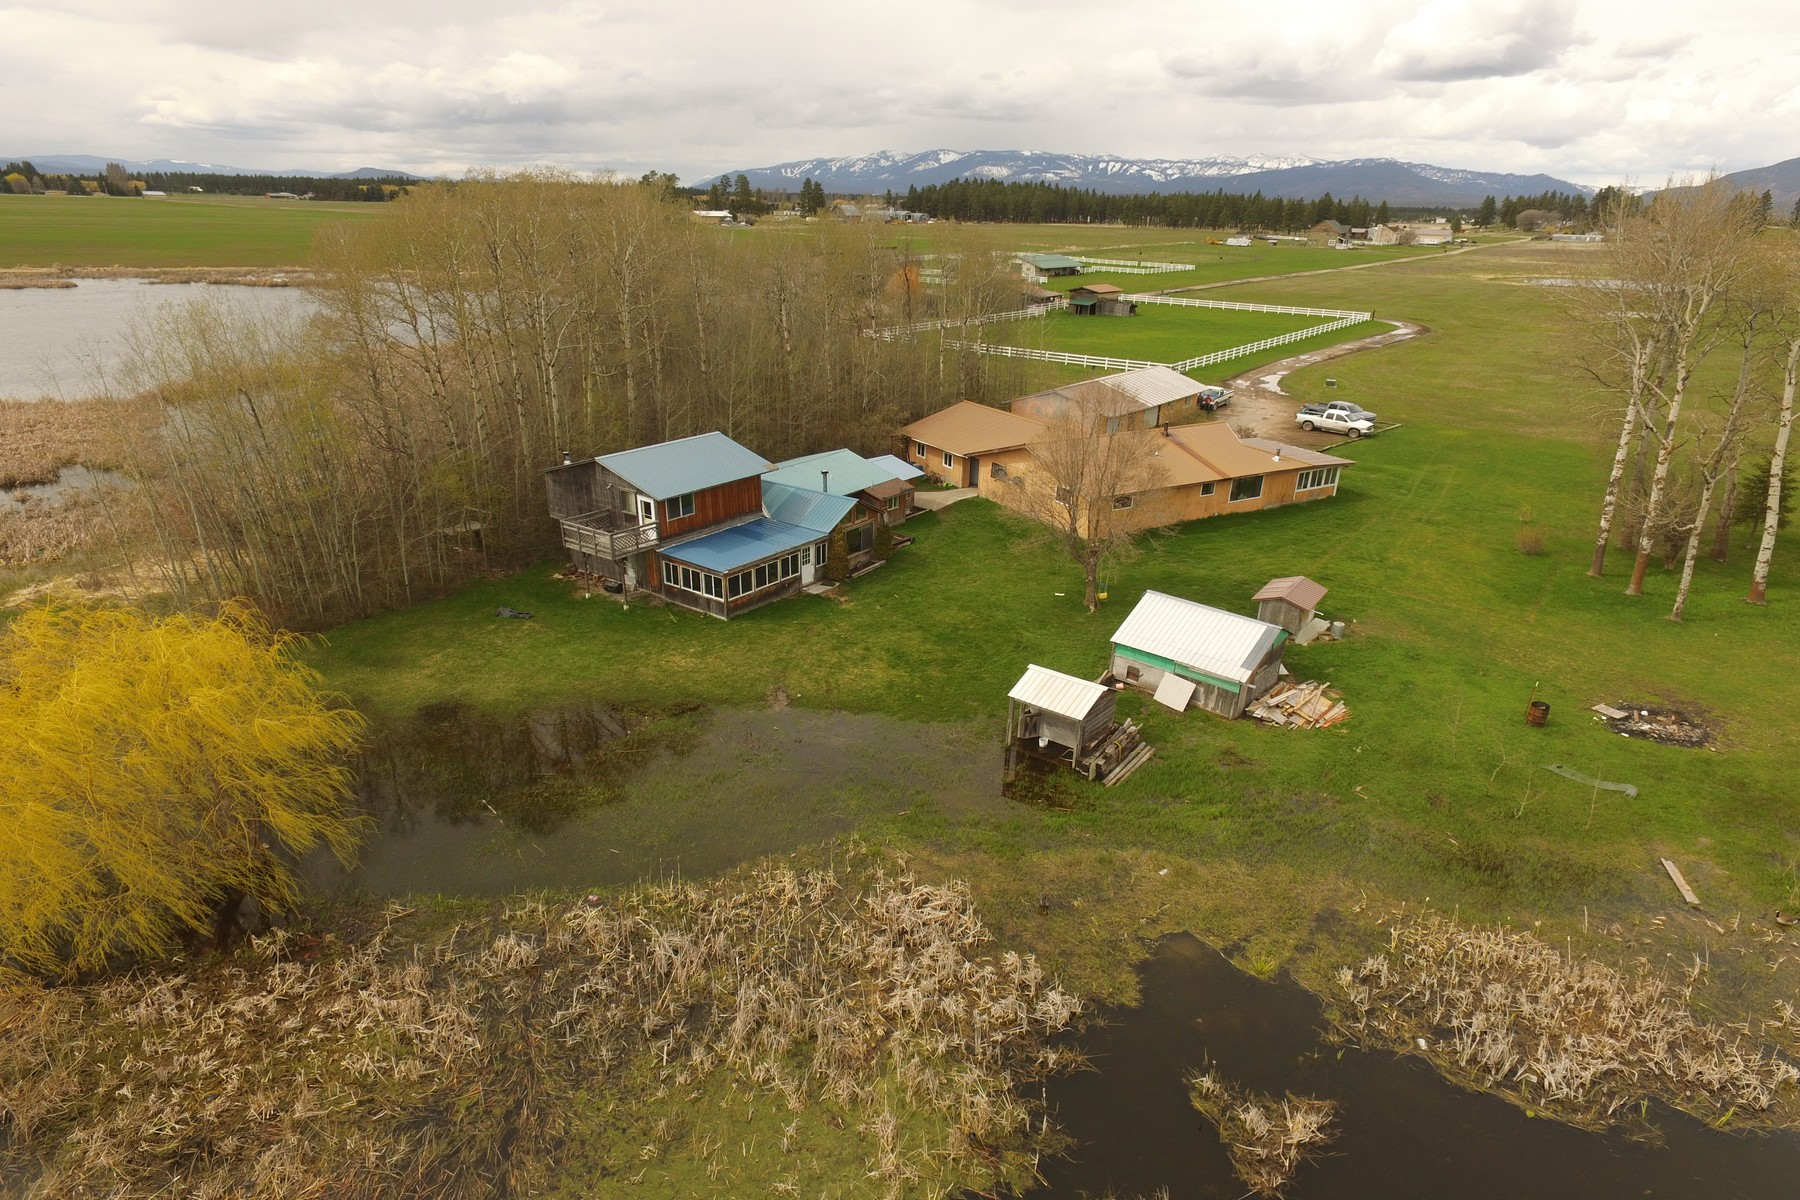 Single Family Home for Sale at 225 Bison Hollow Rd , Columbia Falls, MT 59912 225 Bison Hollow Rd Columbia Falls, Montana 59912 United States